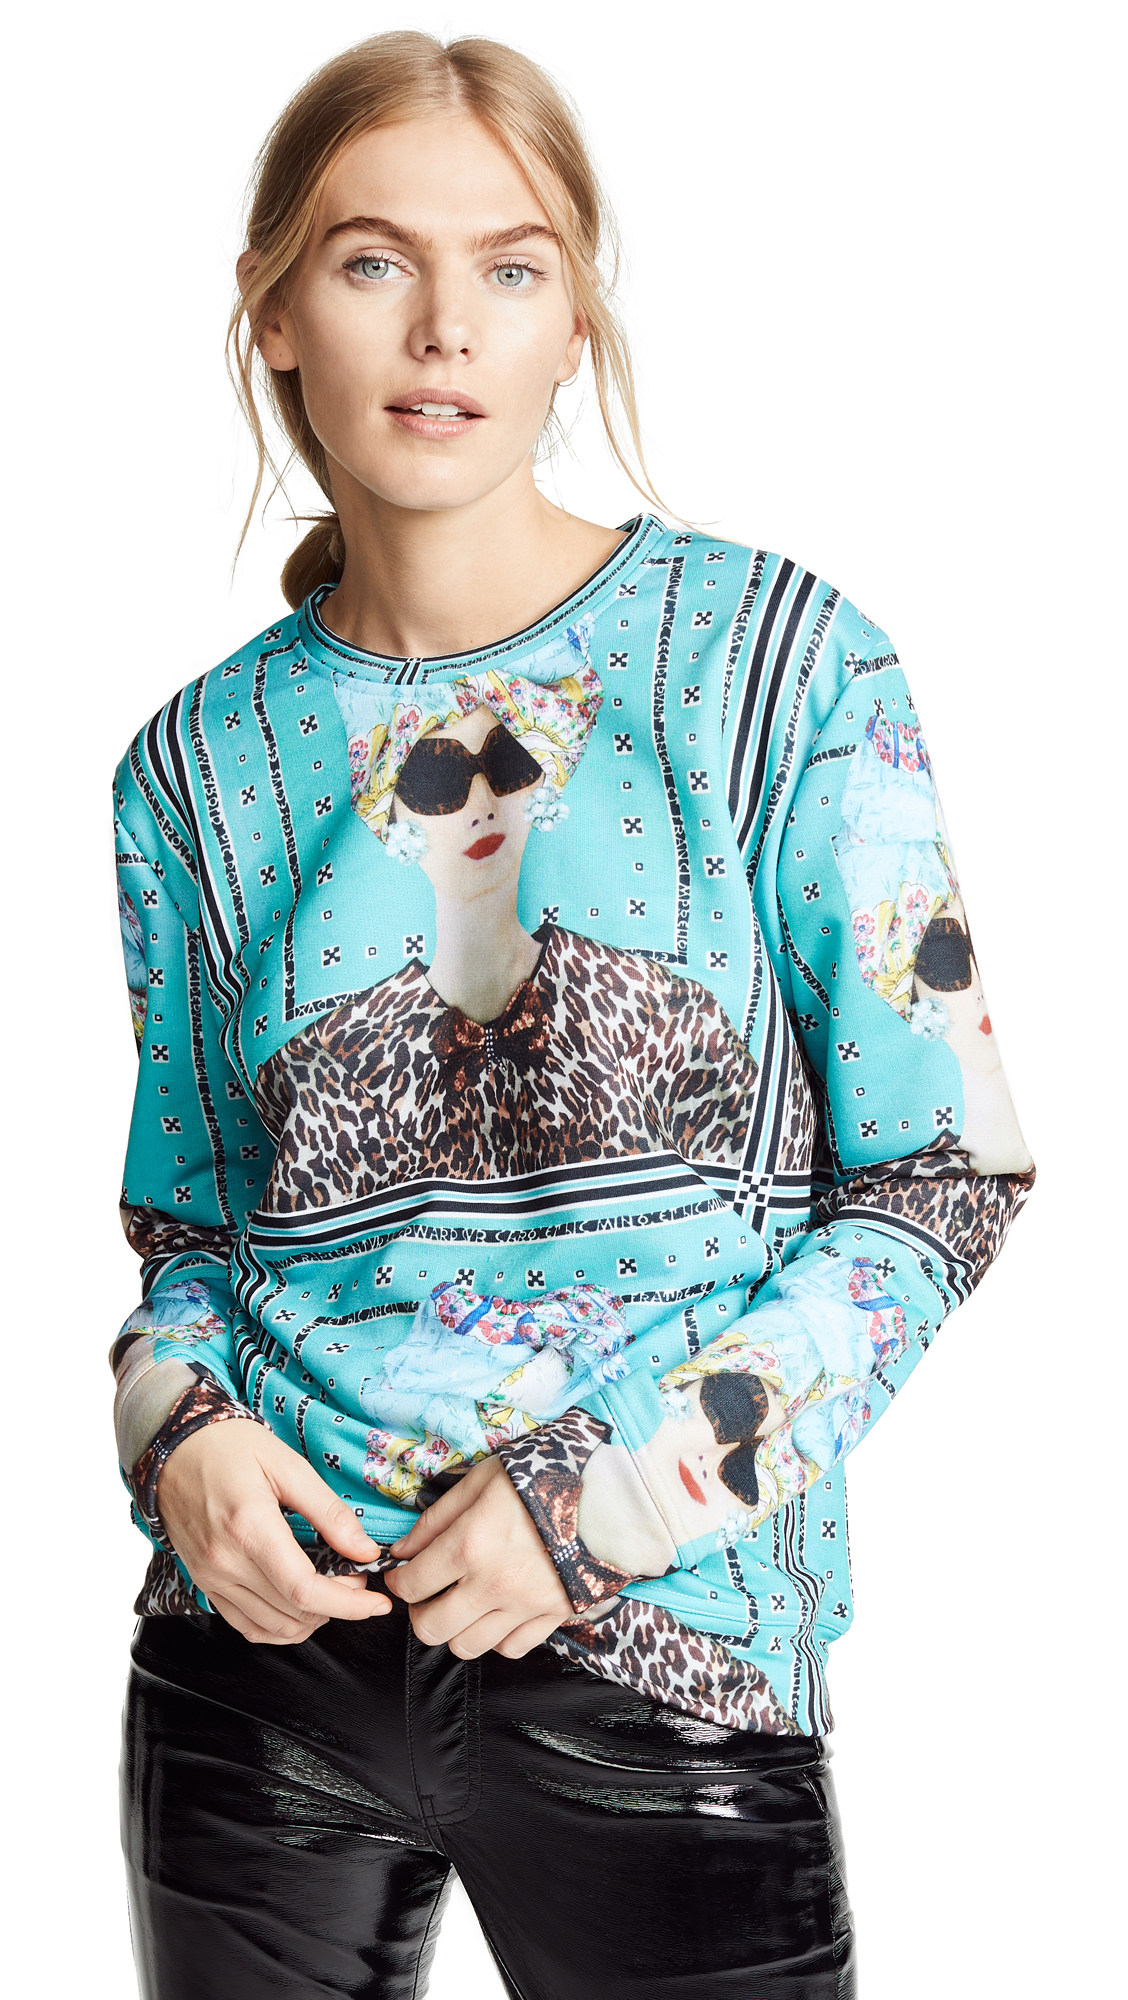 Tata Naka Babe Goes to Capri Sweatshirt - Blue Multi